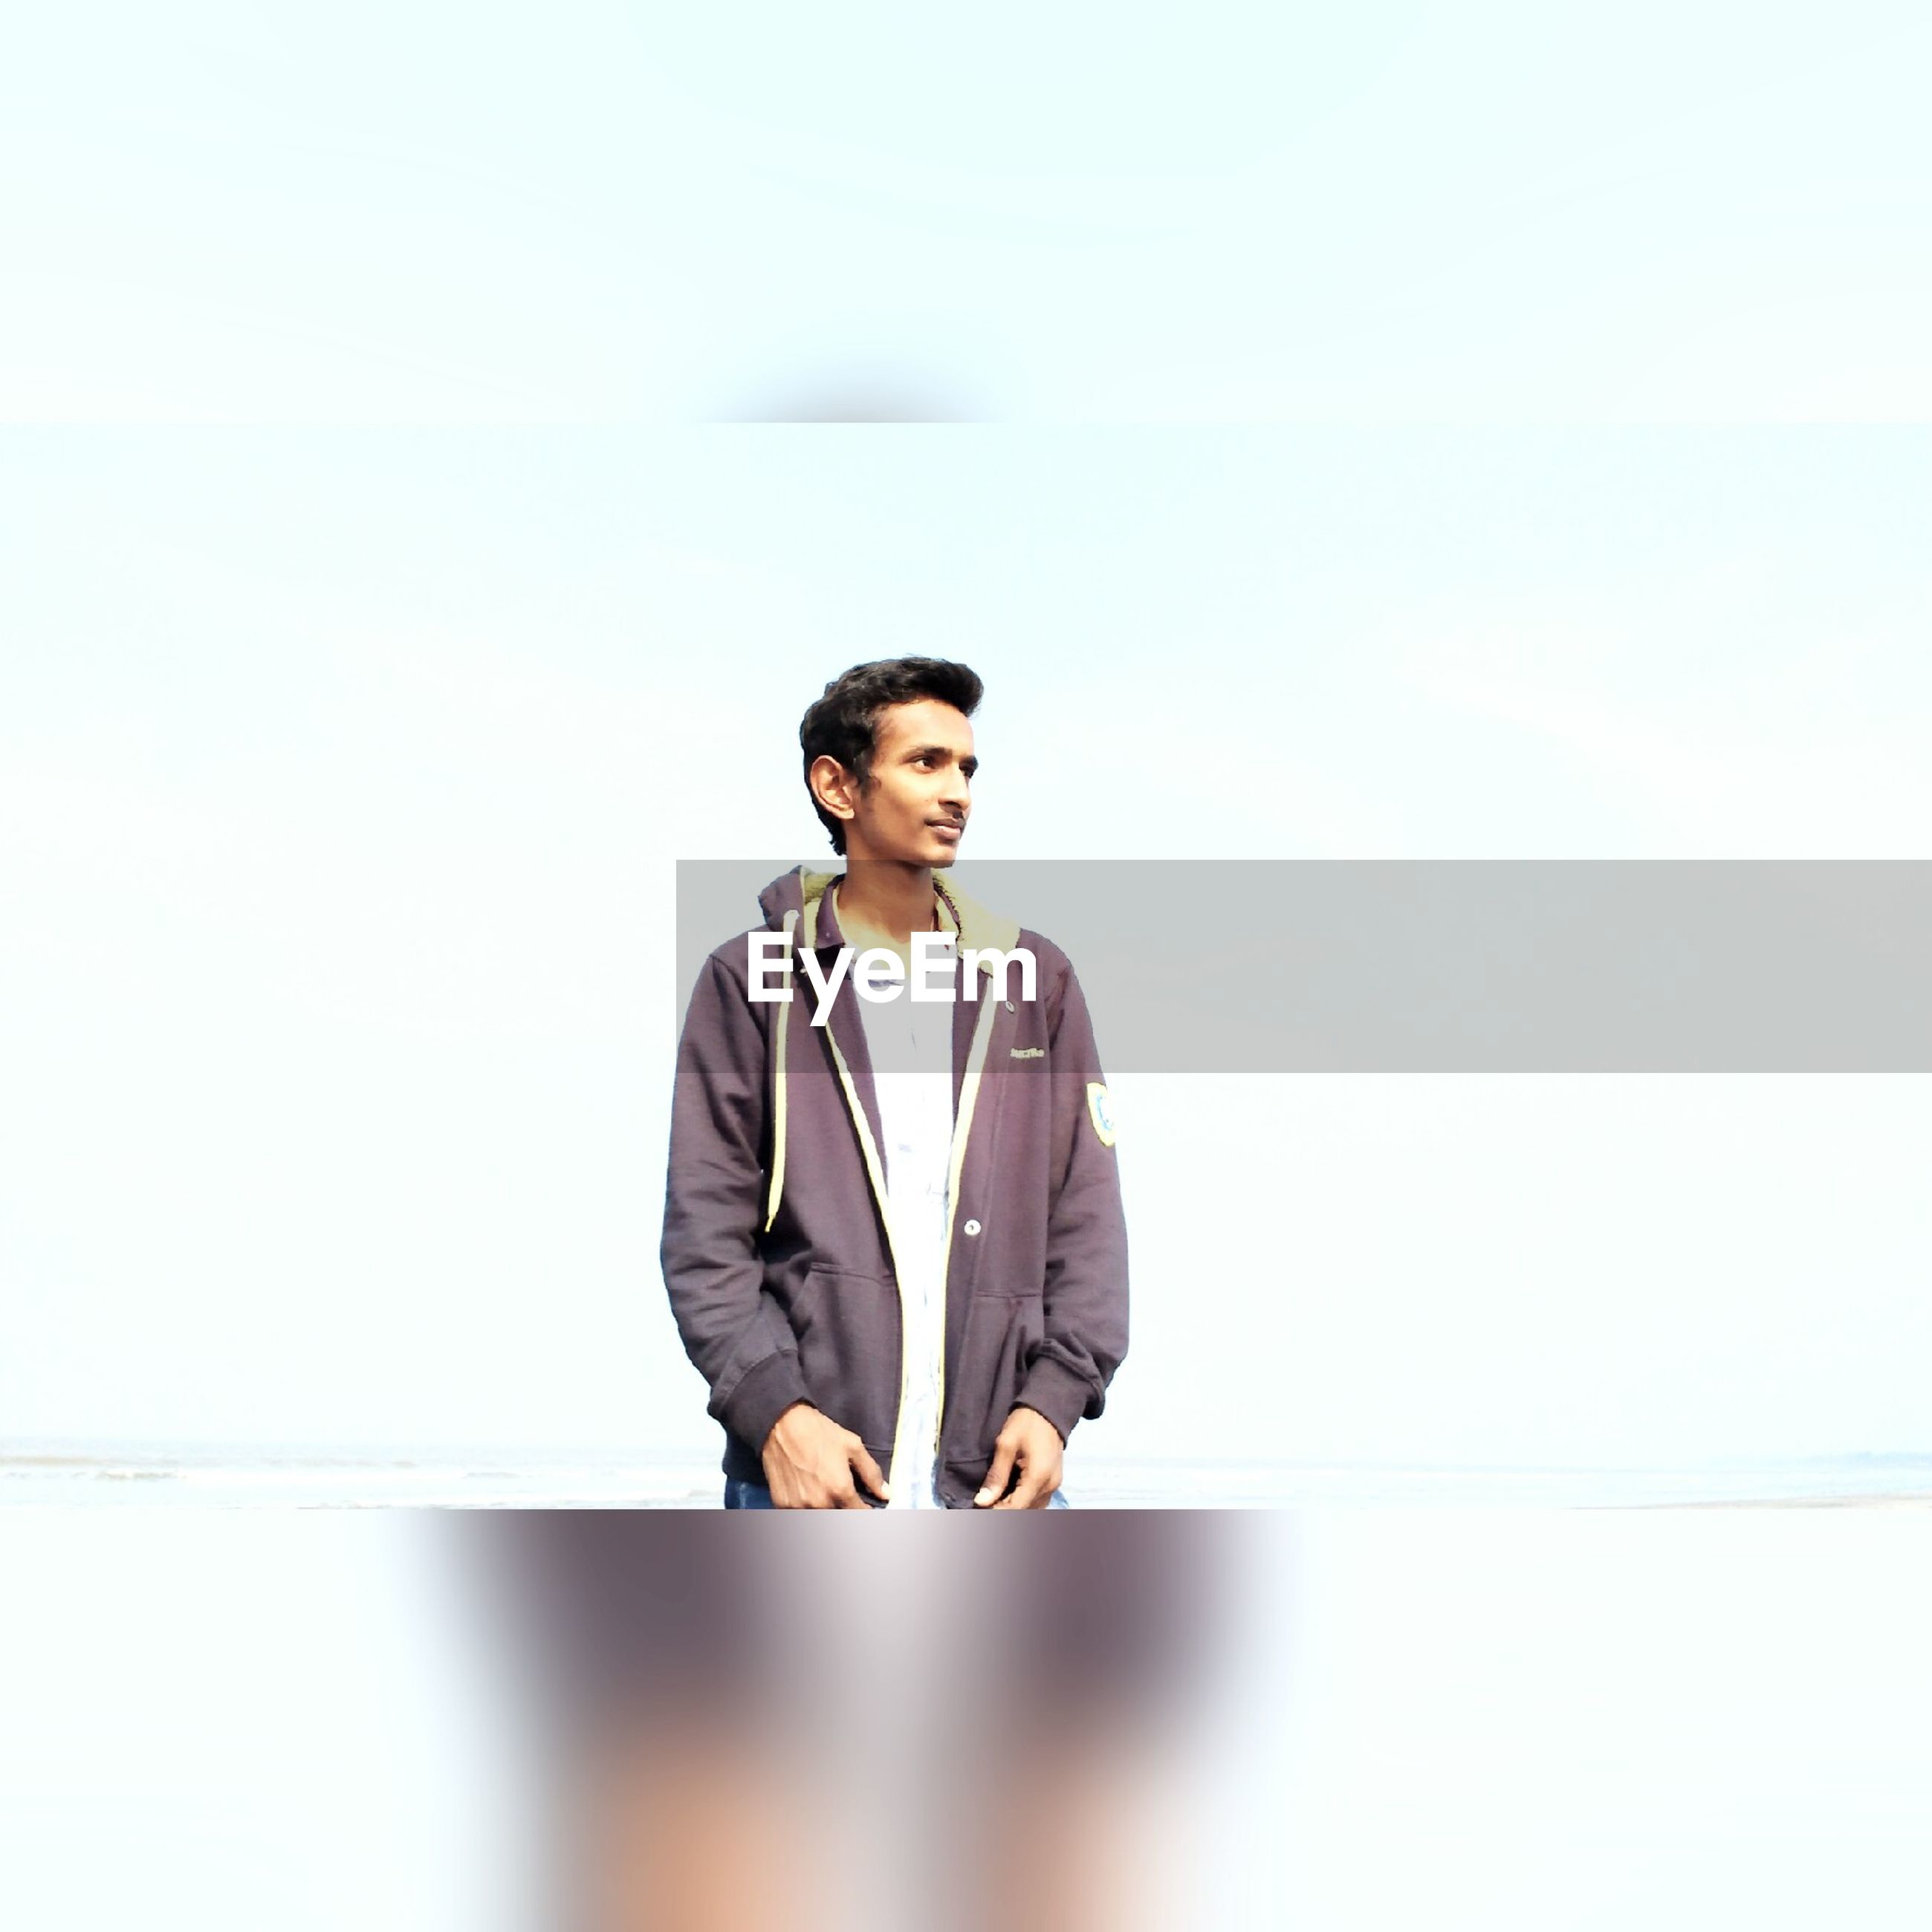 casual clothing, lifestyles, young adult, young men, person, portrait, standing, looking at camera, copy space, front view, leisure activity, waist up, three quarter length, smiling, clear sky, happiness, holding